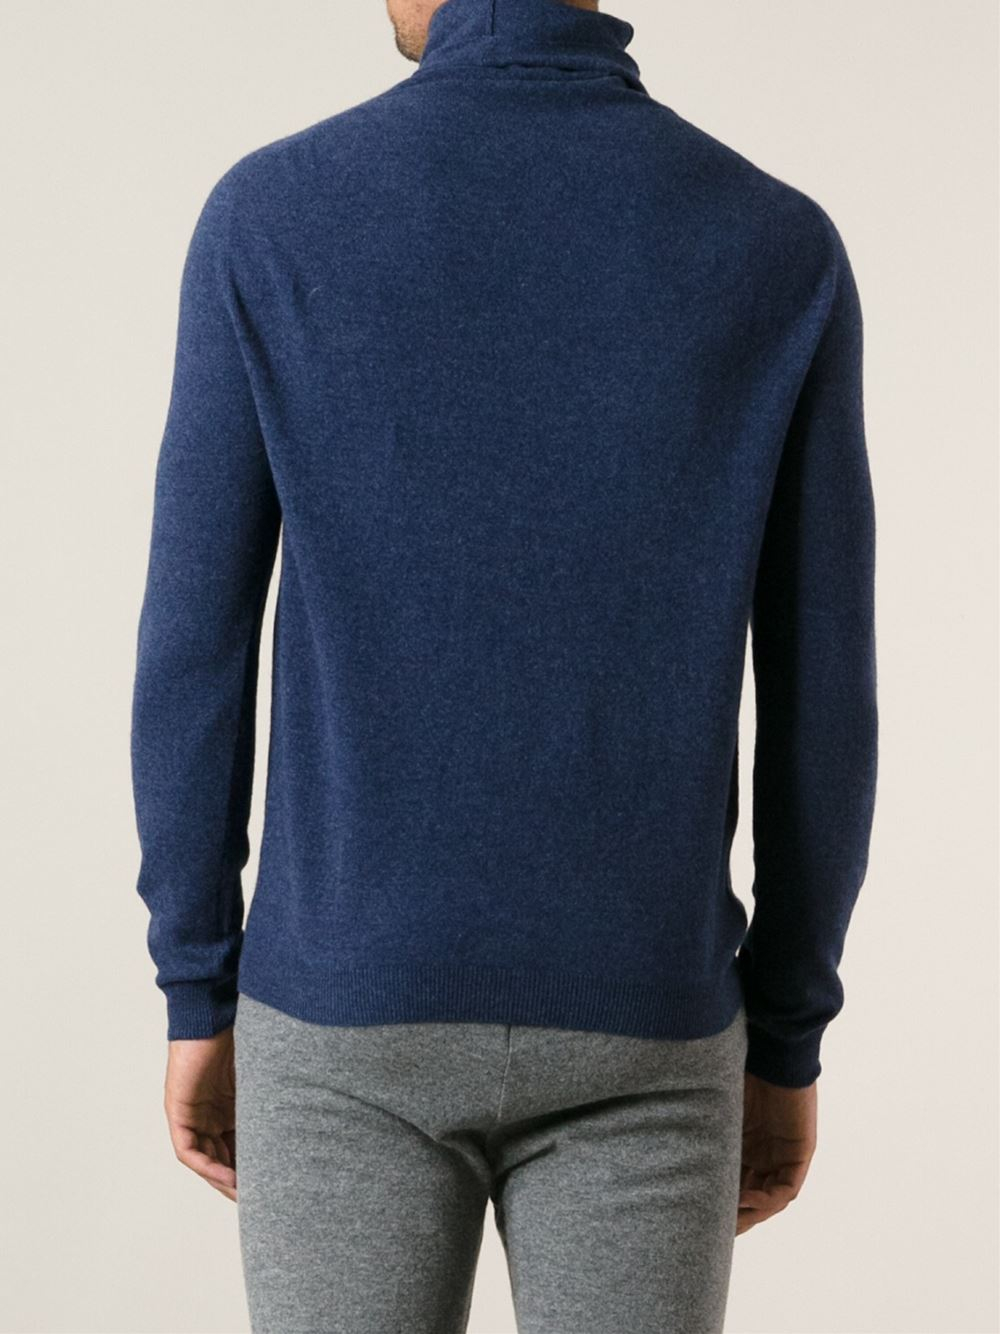 haider ackermann vicopano turtleneck sweater in blue for. Black Bedroom Furniture Sets. Home Design Ideas